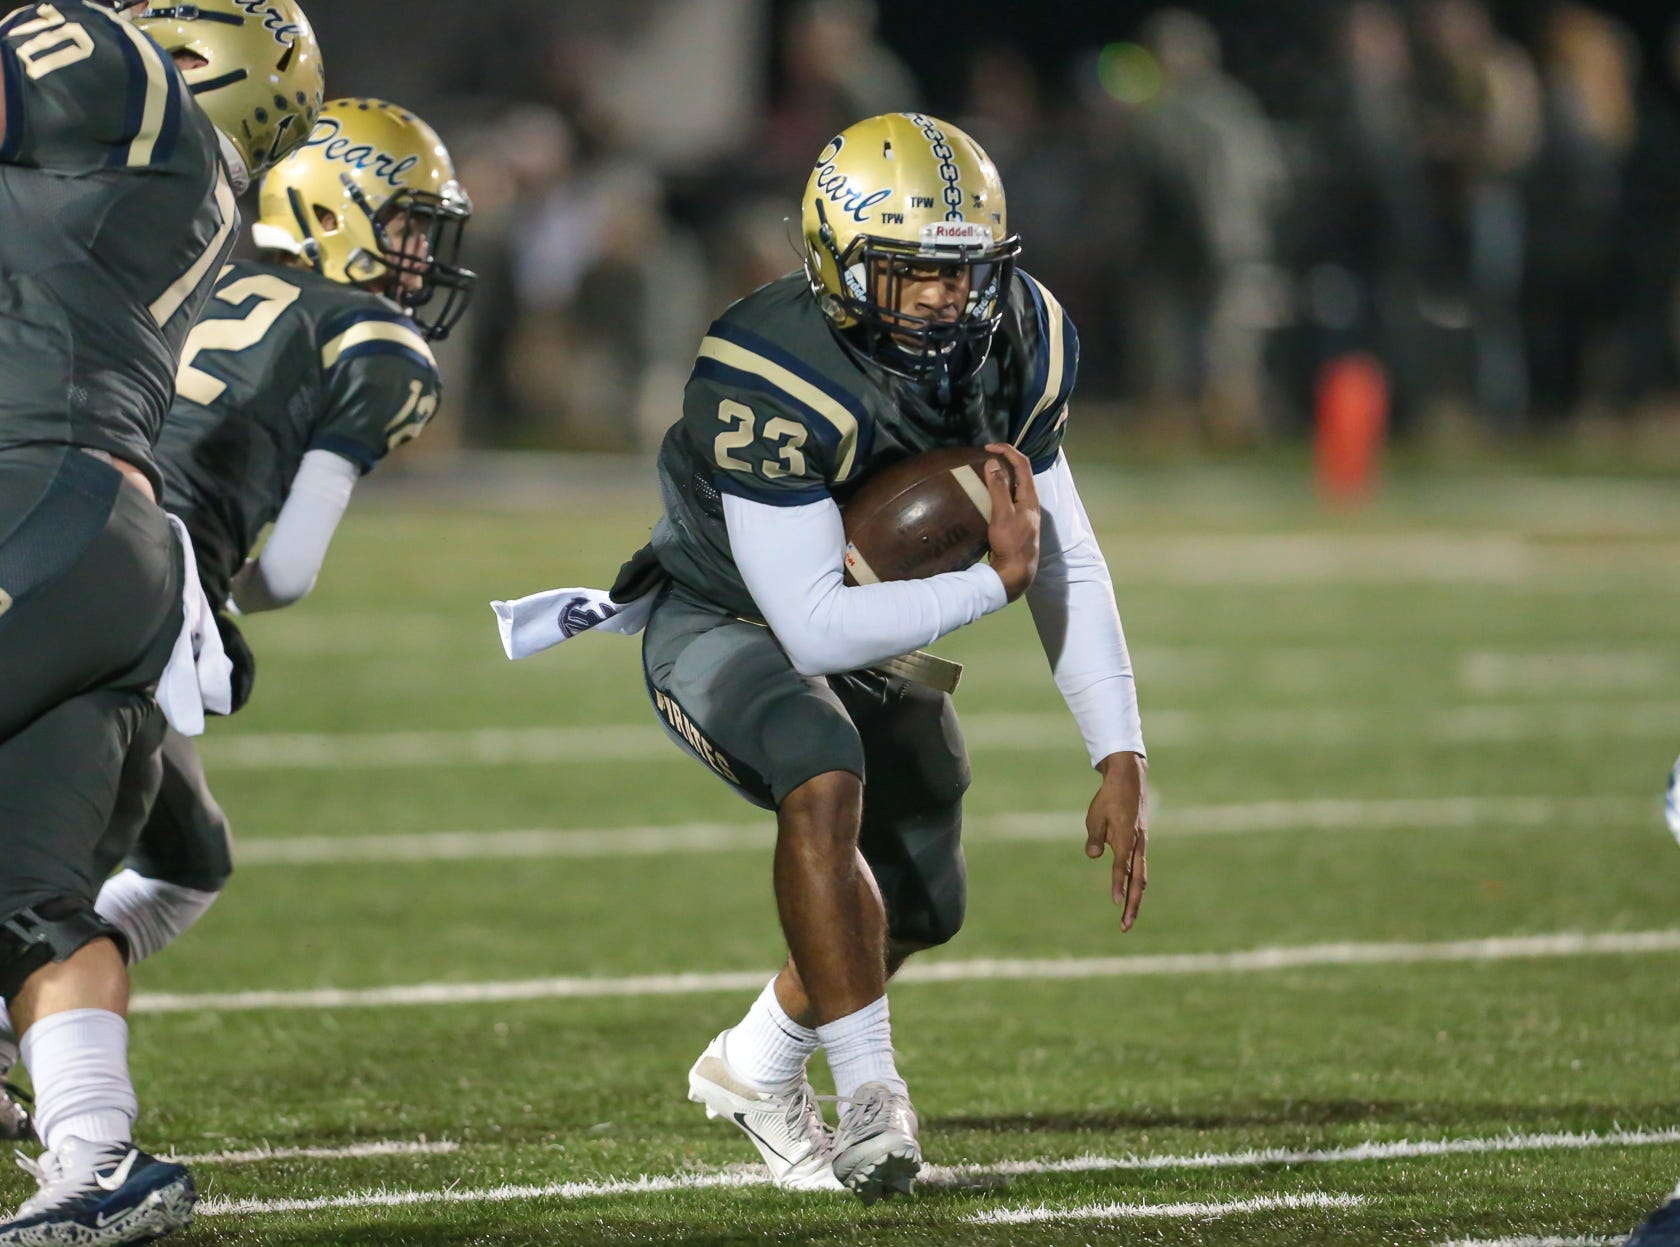 Pearl High School's Kenyatta Harrell (23) finds a hole in the Brandon defensive line in the first half. Pearl played Brandon High School in an MHSAA Class 6A playoff game on Friday, November 16, 2018 at Brandon. Photo by Keith Warren